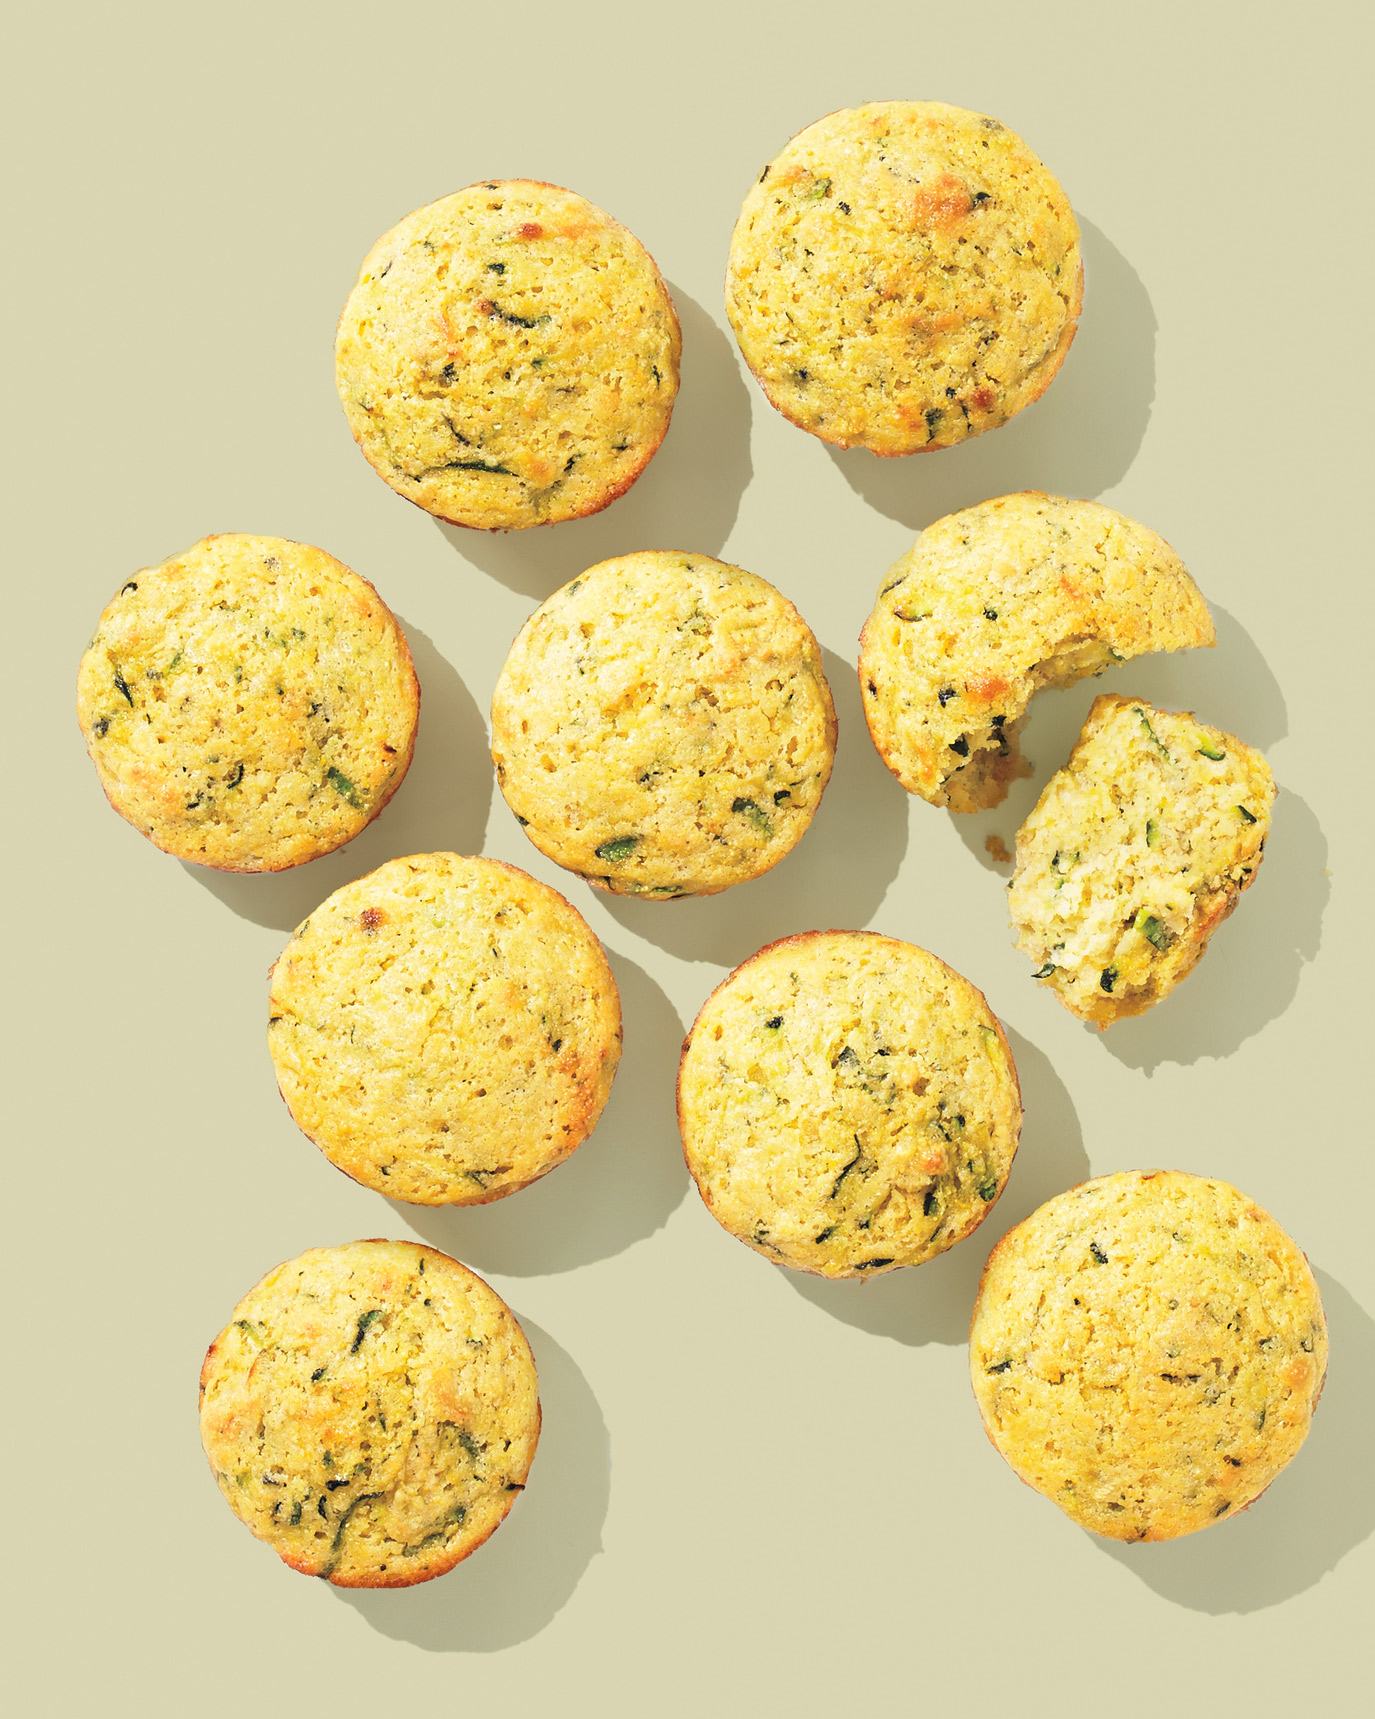 multiple zucchini muffins on surface